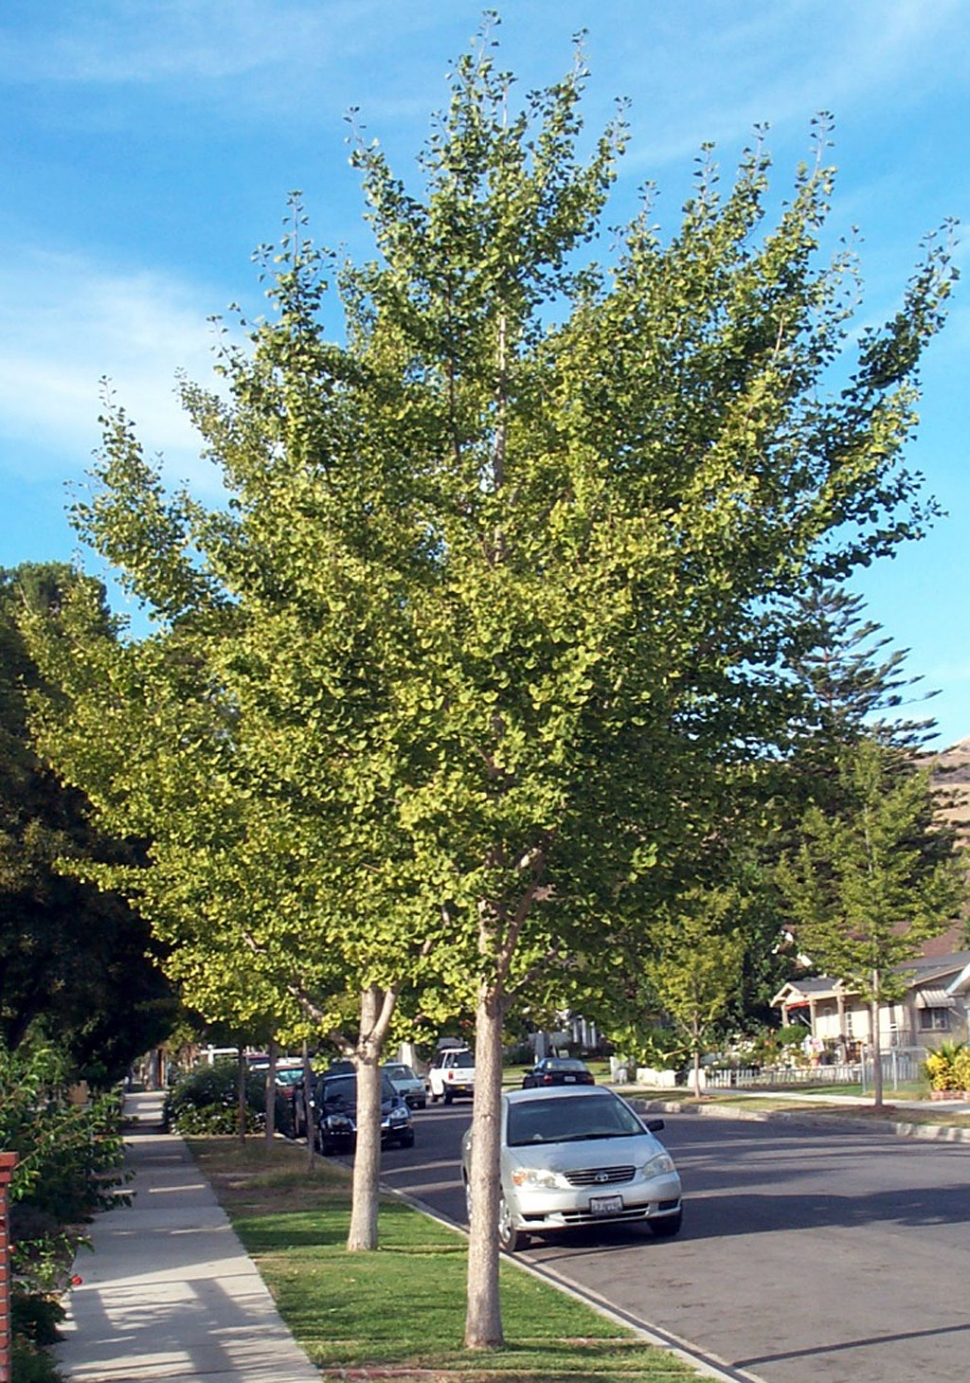 Ancient Ginkgo Trees Have Survived The Test Of Time The Fillmore